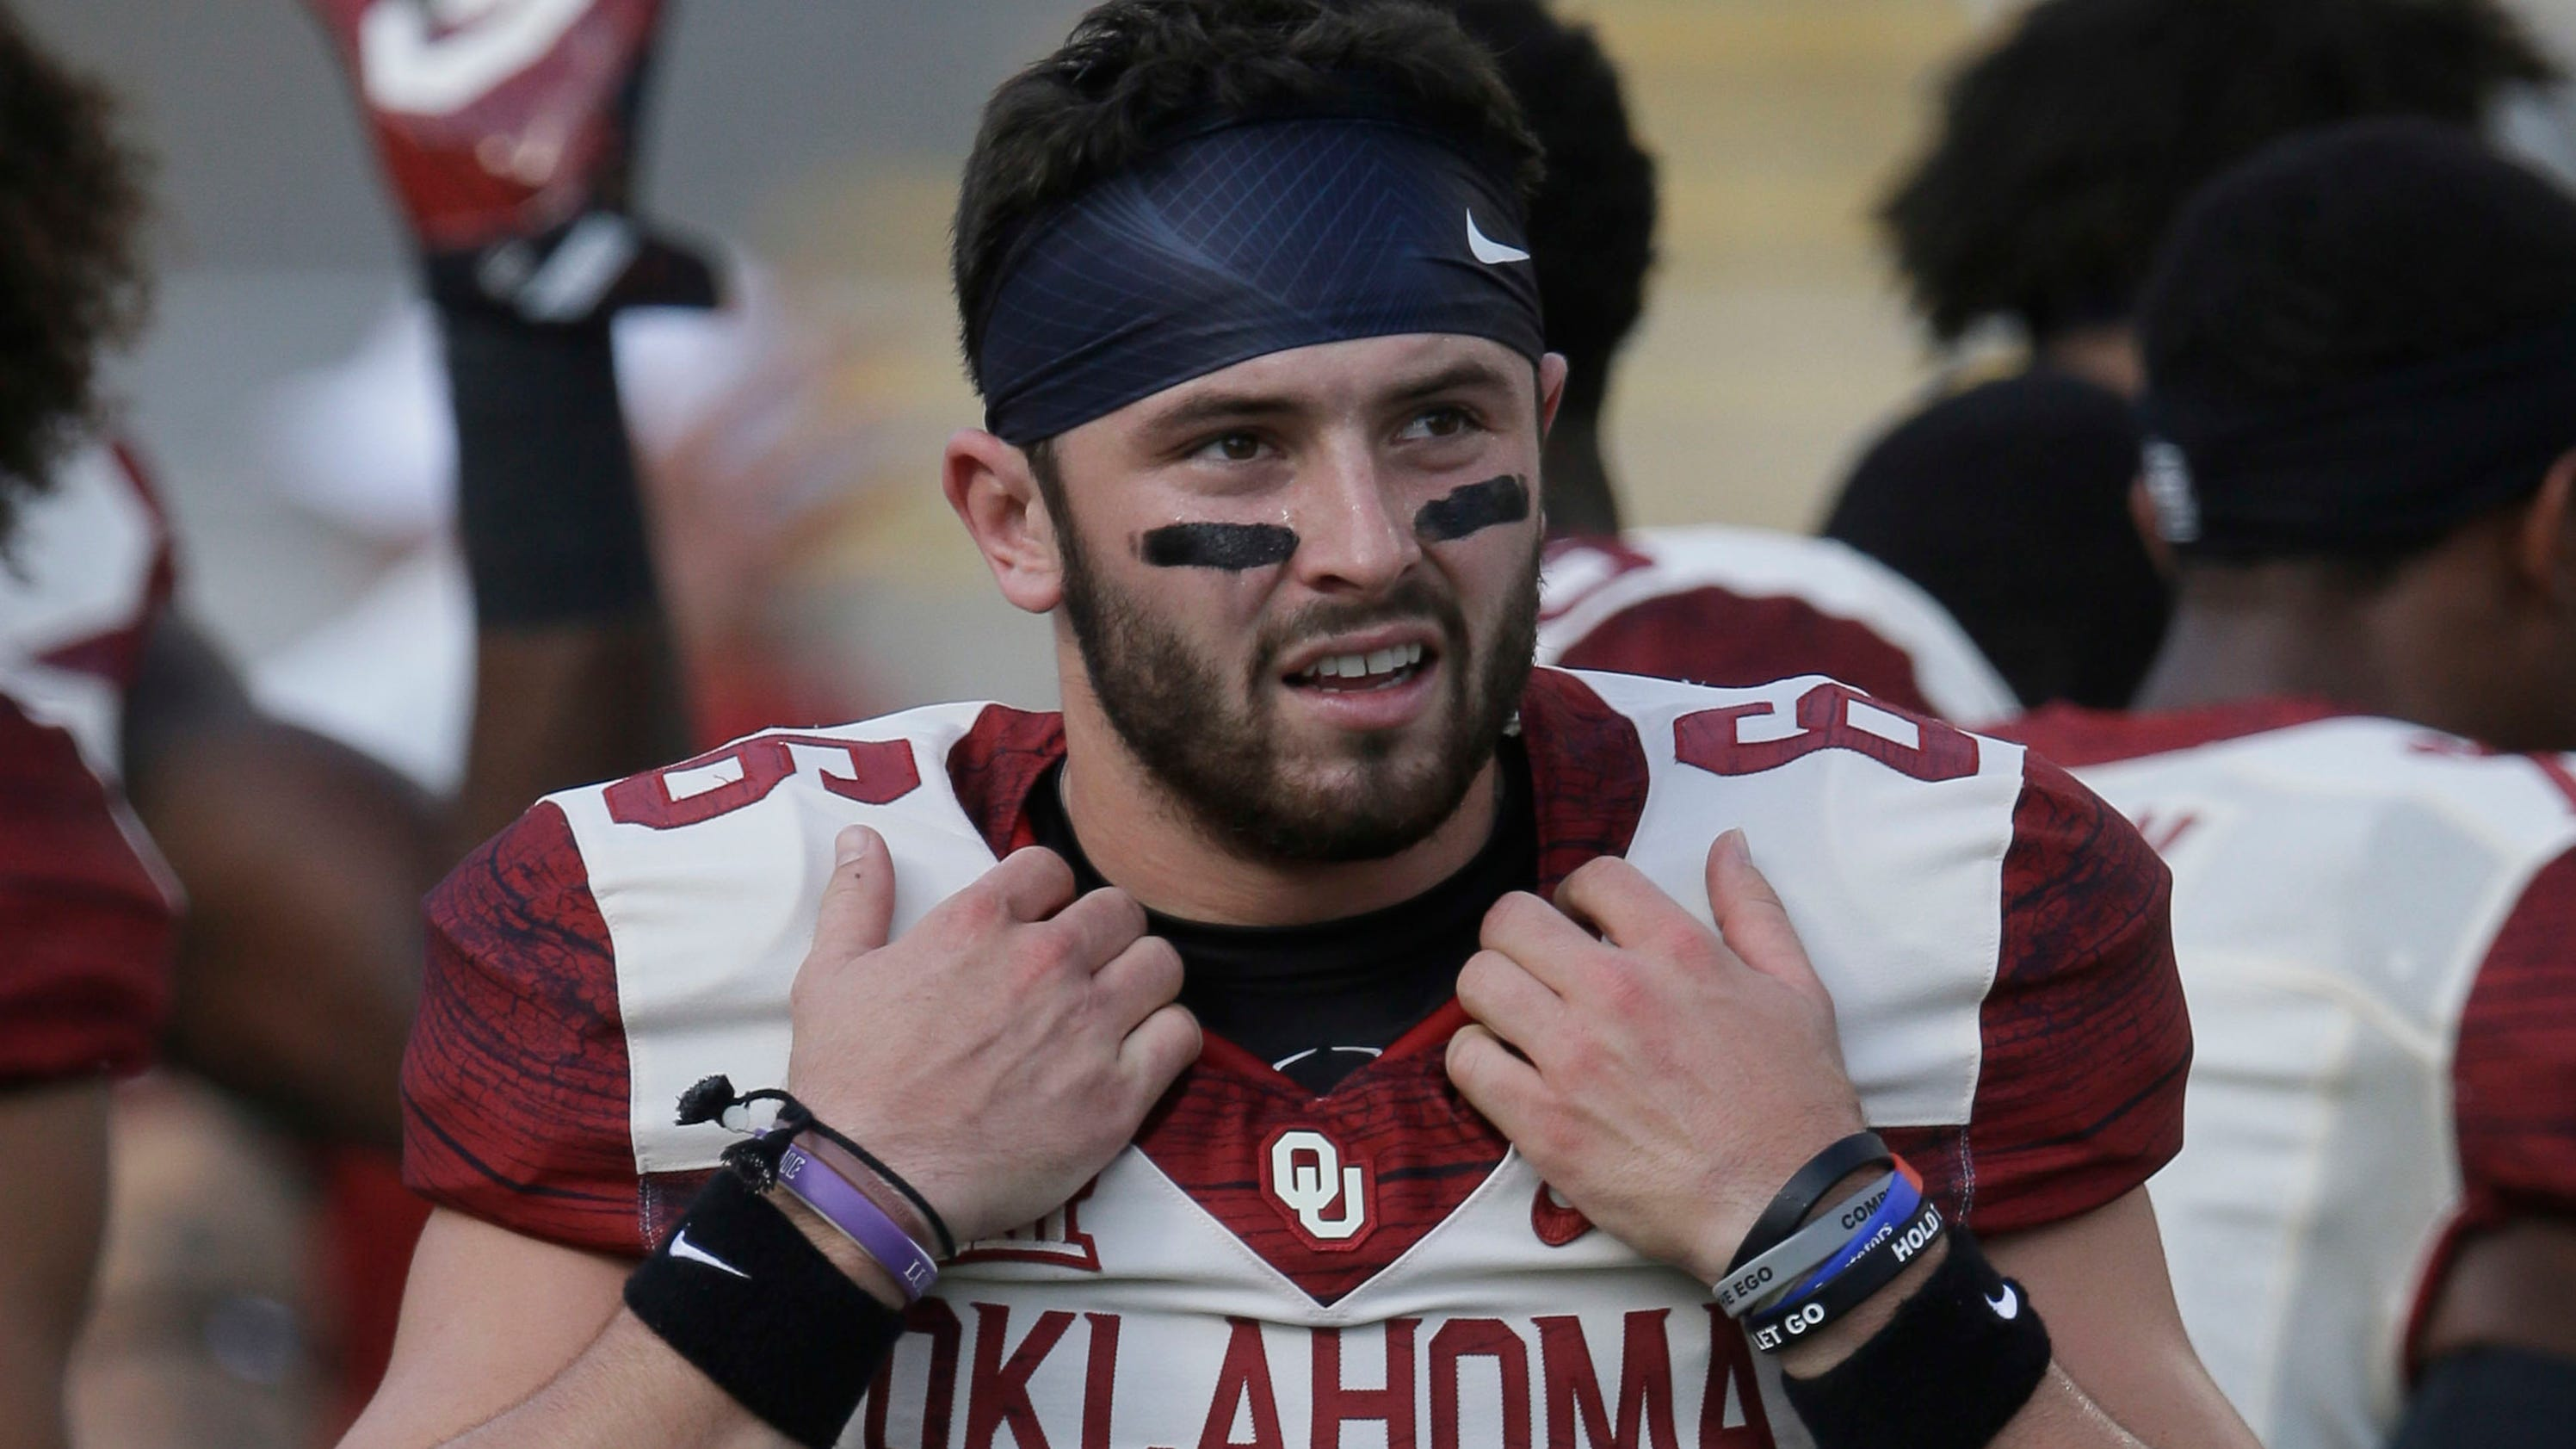 Baker Mayfield tells Baylor players he's going to spank them